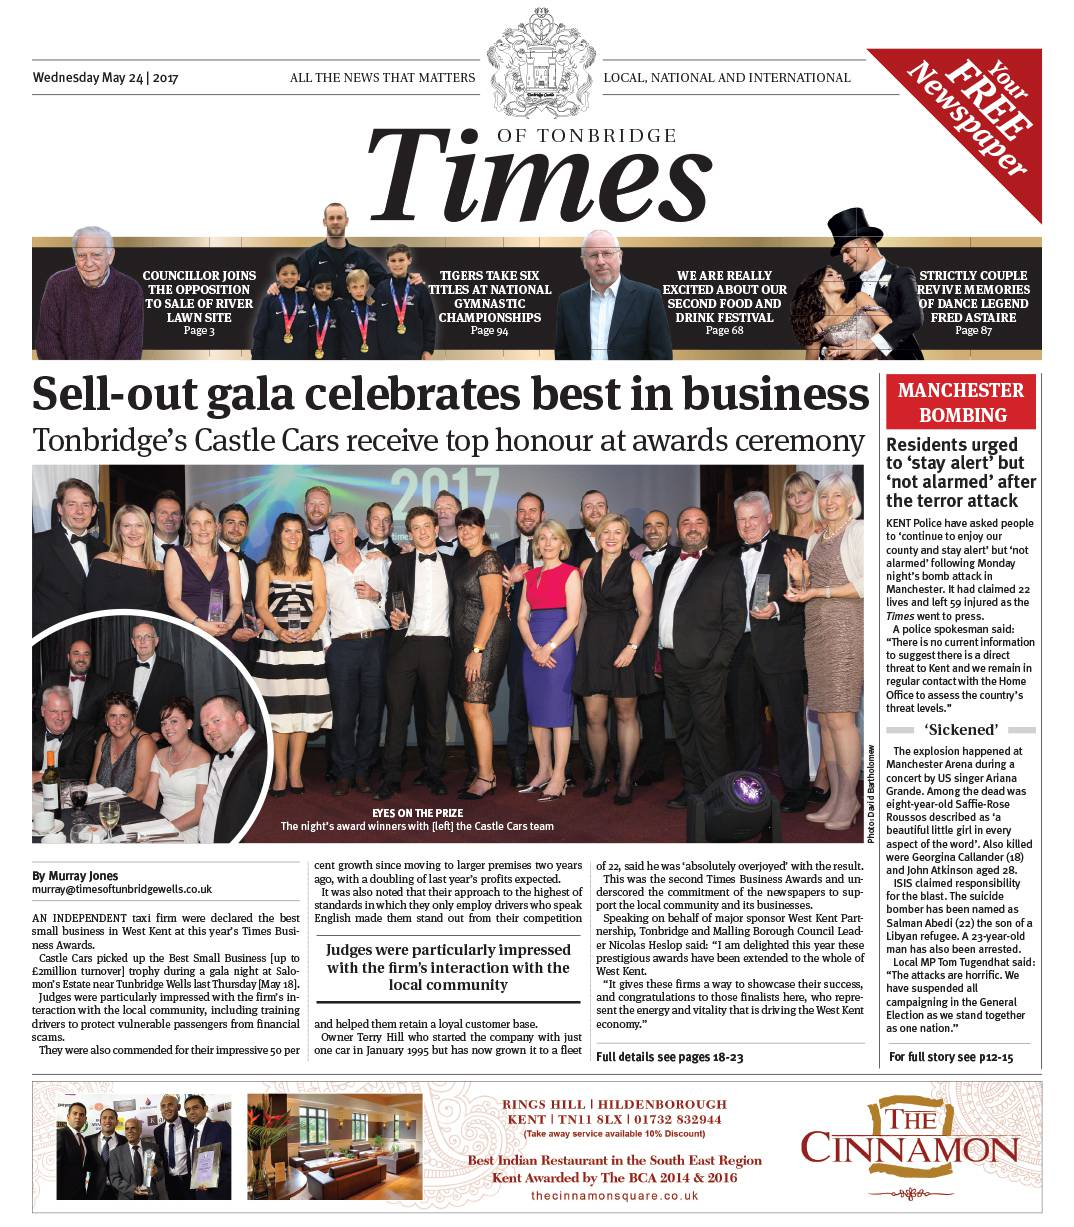 Read the Times of Tonbridge 24th May 2017